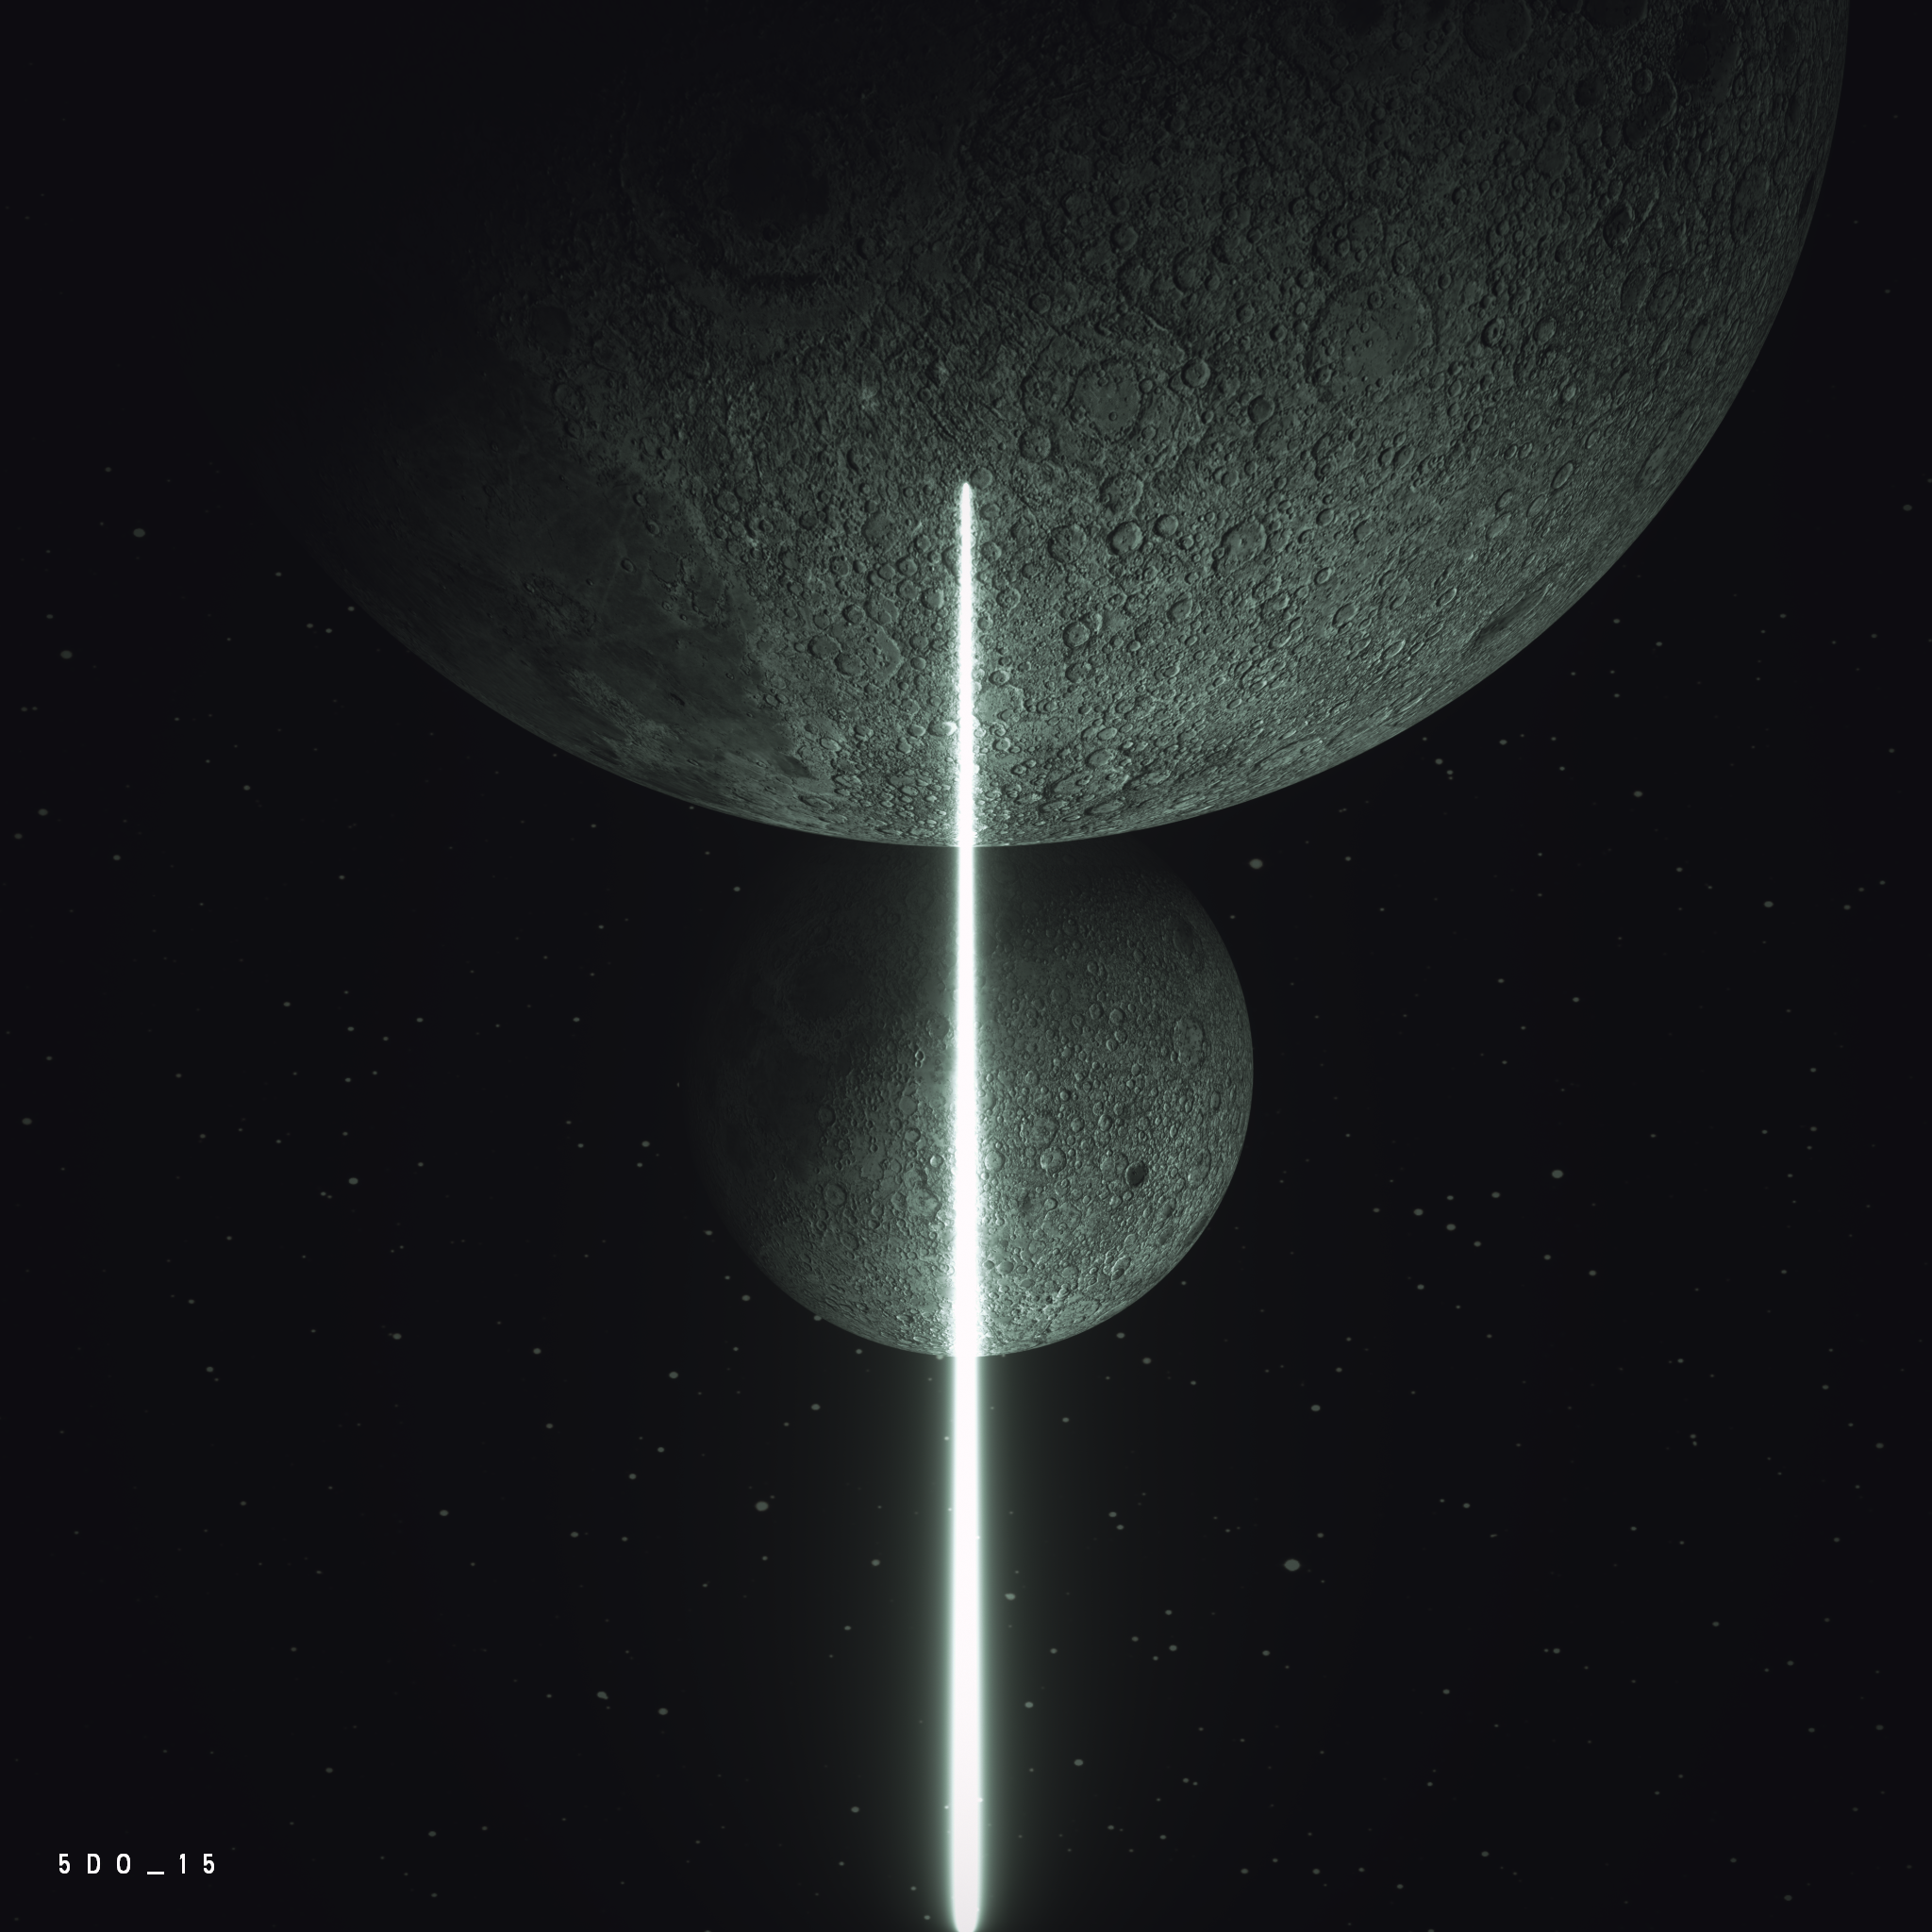 5DO_5_Moons_v01.png